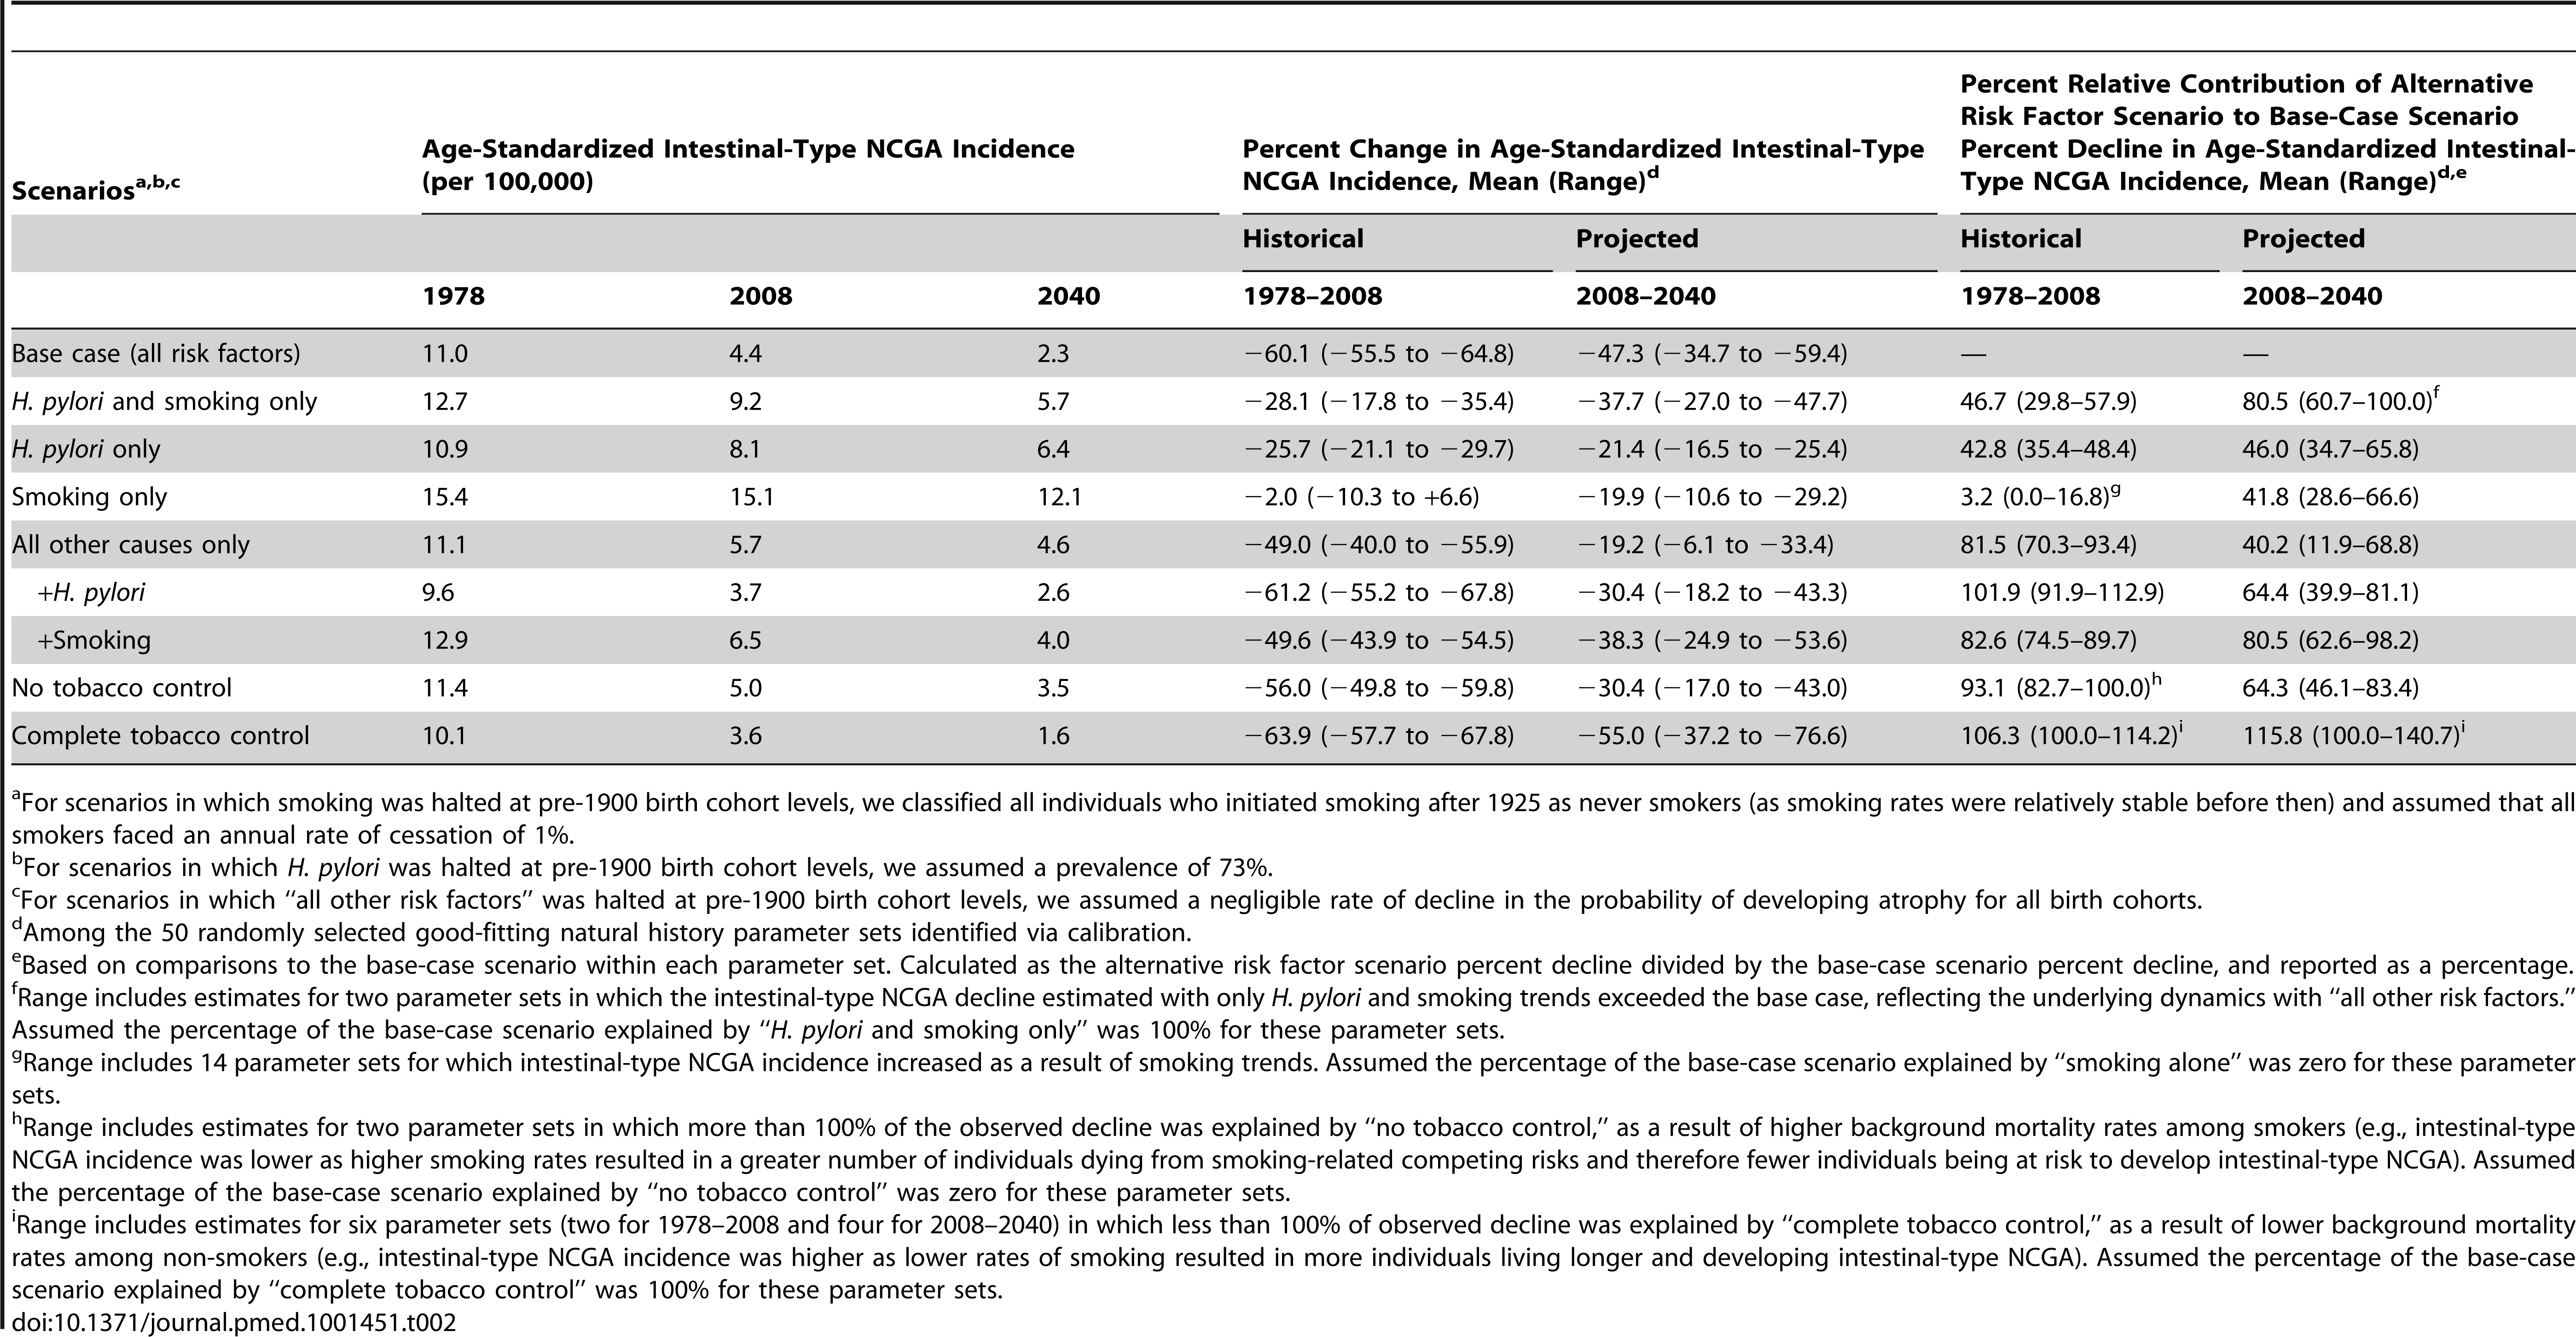 Modeled intestinal-type NCGA outcomes between 1978 and 2040: age-standardized incidence, percent change in incidence, and relative contribution of alternative risk factor scenarios to the base-case scenario percent decline in incidence.